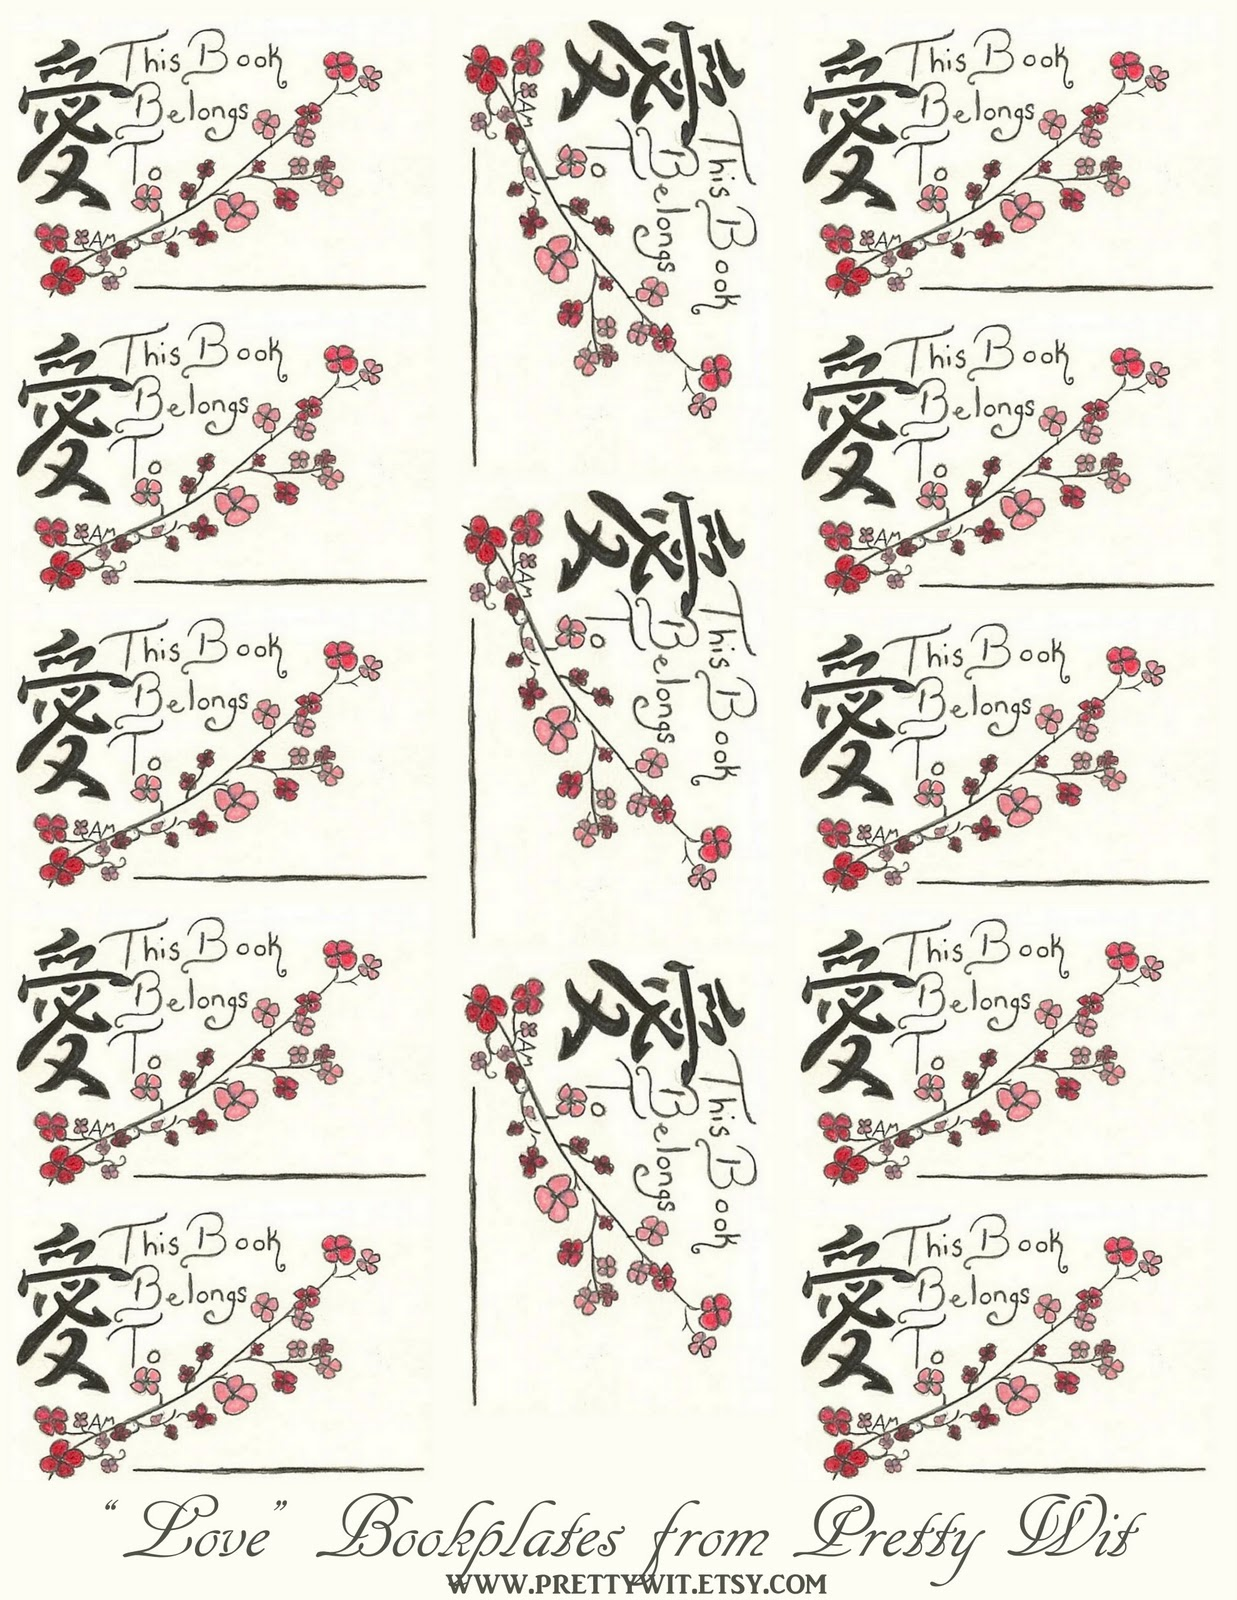 Part 2 Free Printable Valentine Bookplates. 1237 x 1600.First Valentine's Day Poems